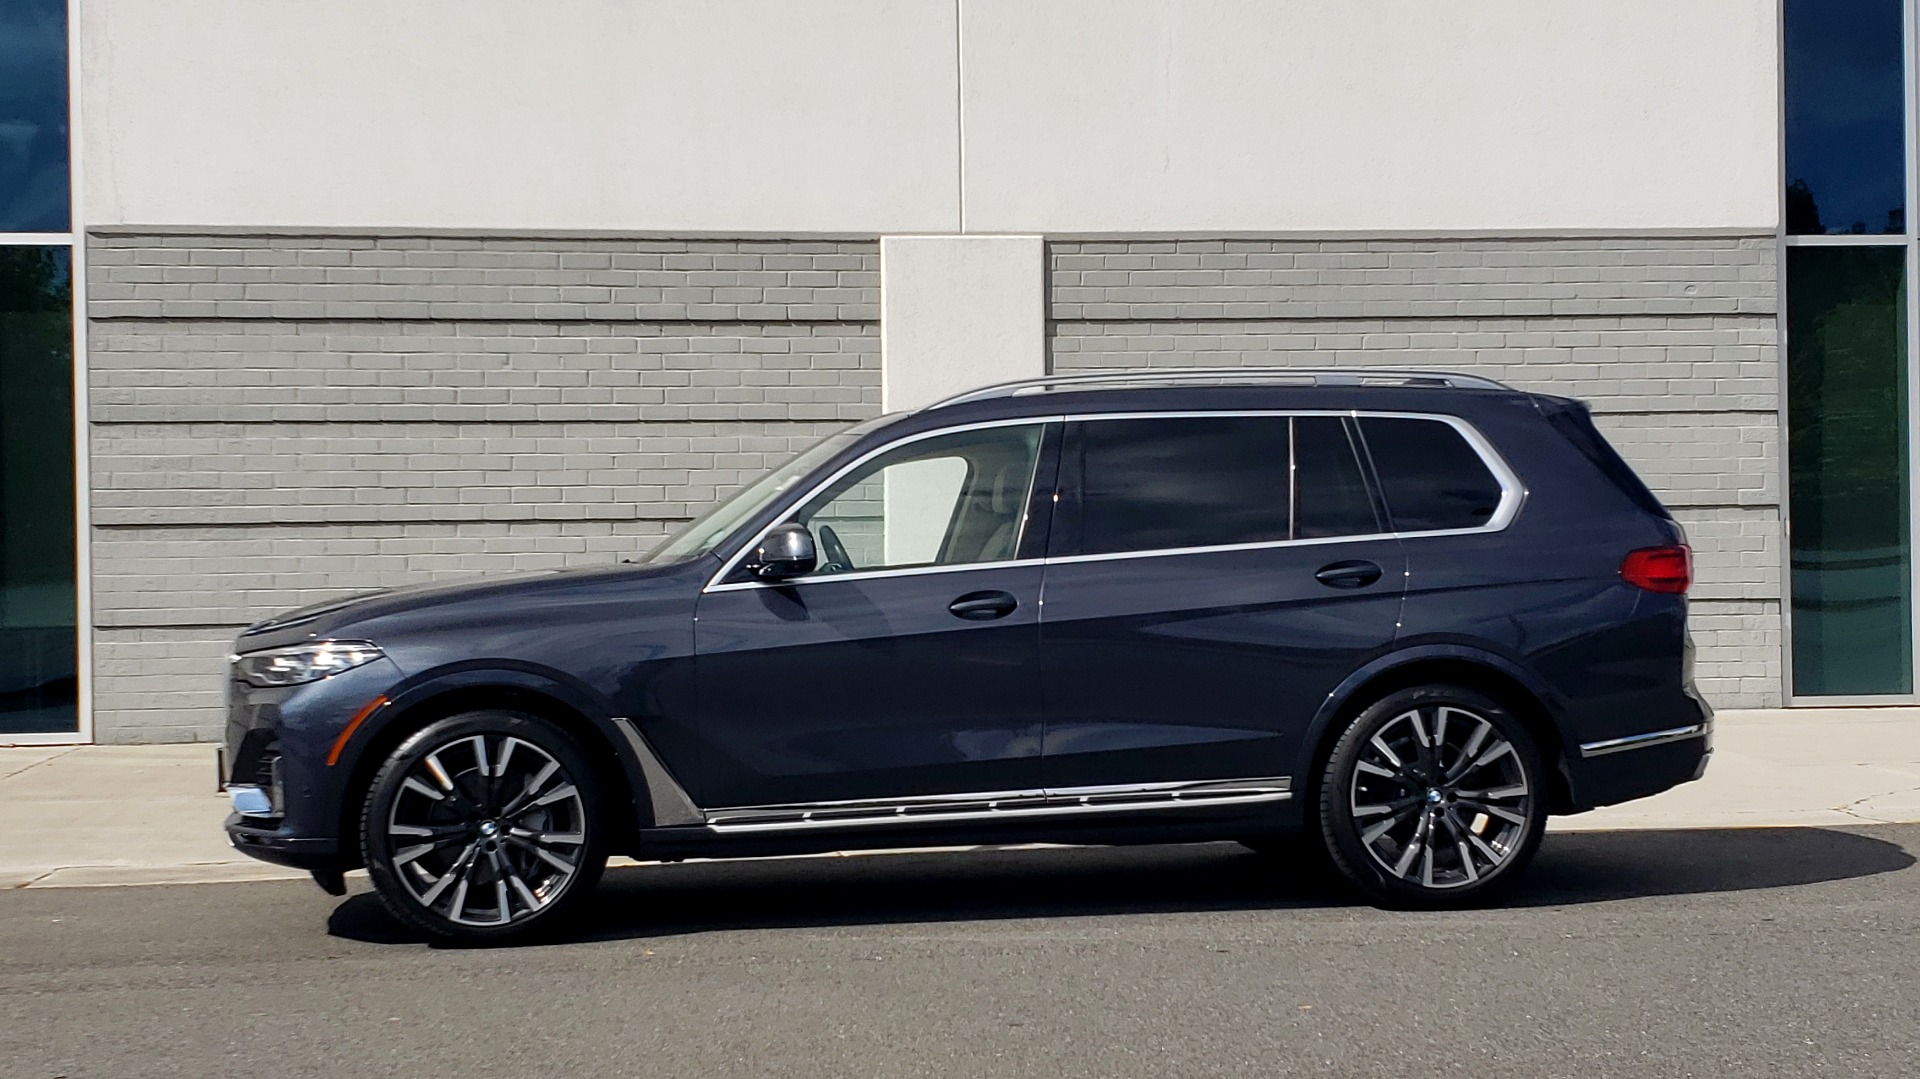 Used 2019 BMW X7 XDRIVE40I PREMIUM / LUXURY / COLD WEATHER / PARK ASST / PANORAMIC SKY / TOW for sale $75,999 at Formula Imports in Charlotte NC 28227 4